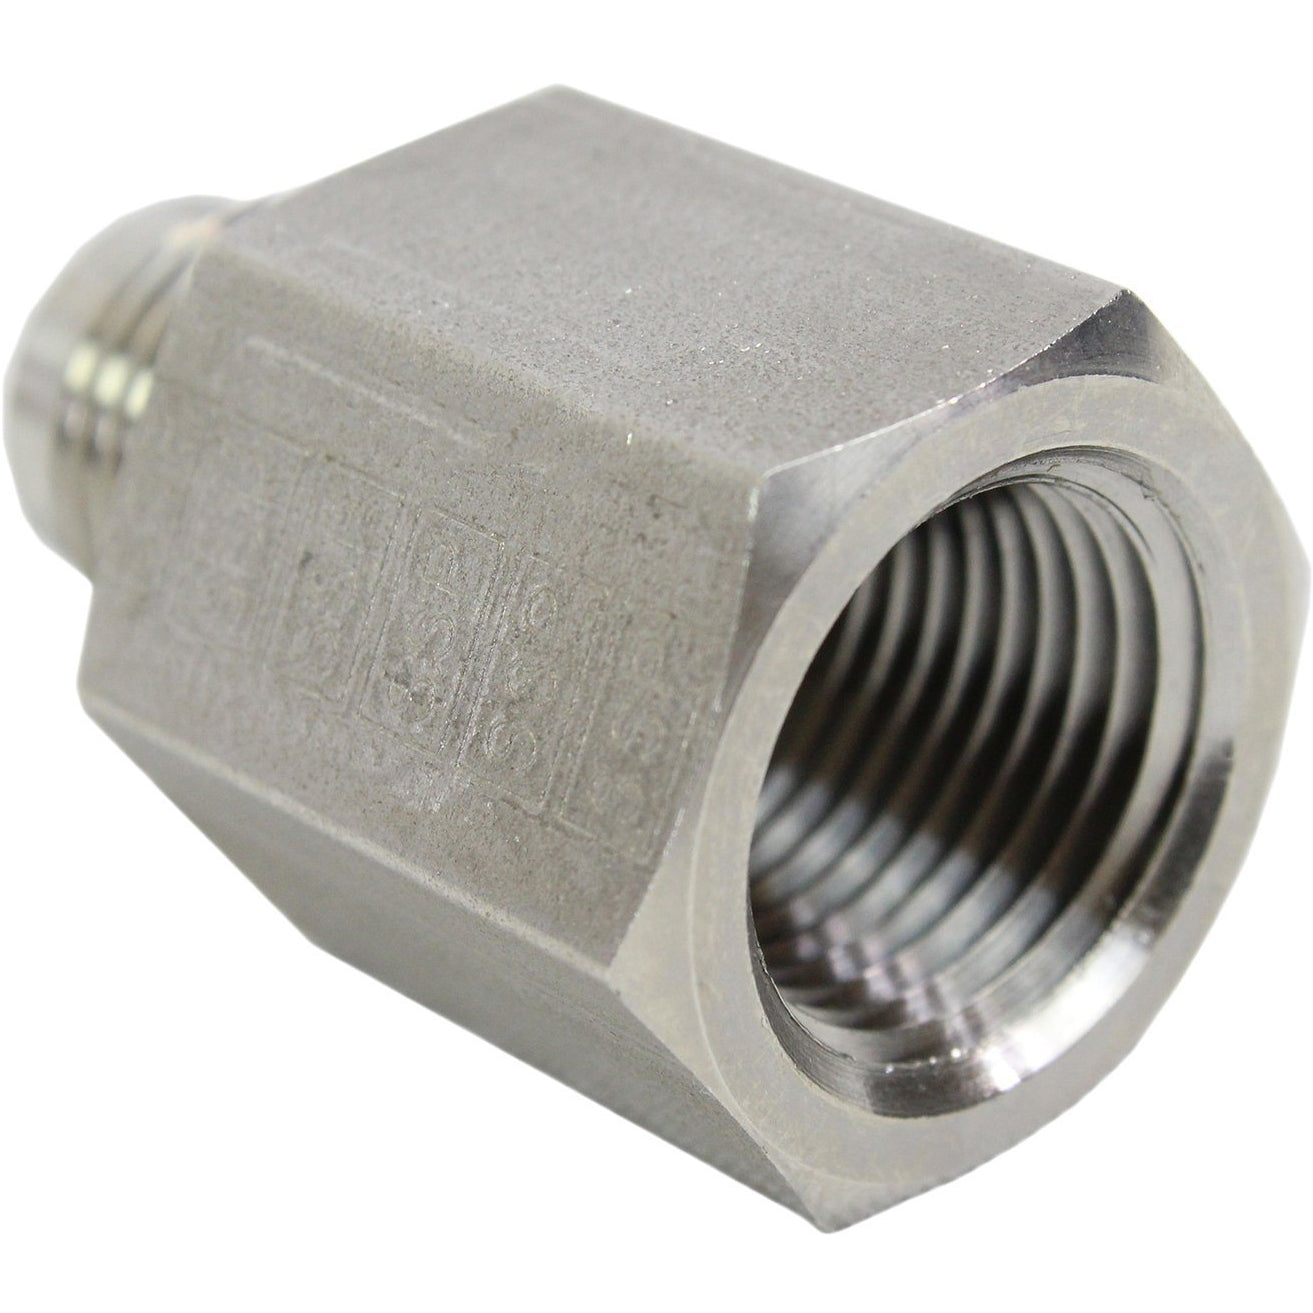 SSP - 37° AN x Female Adapter Shop All Categories SSP Corporation